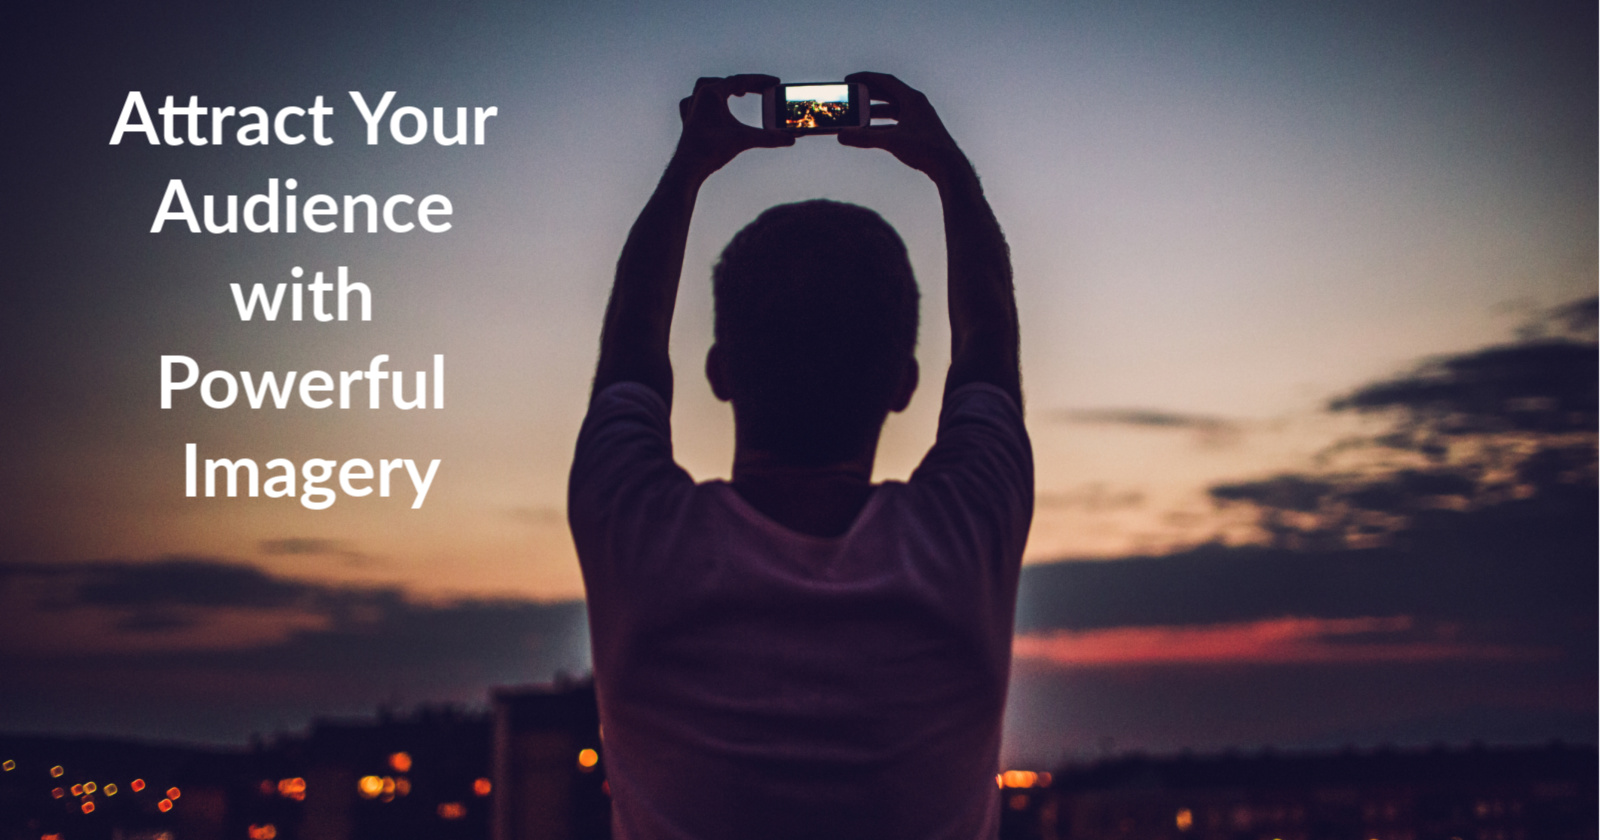 Attract Your Audience with Powerful Imagery